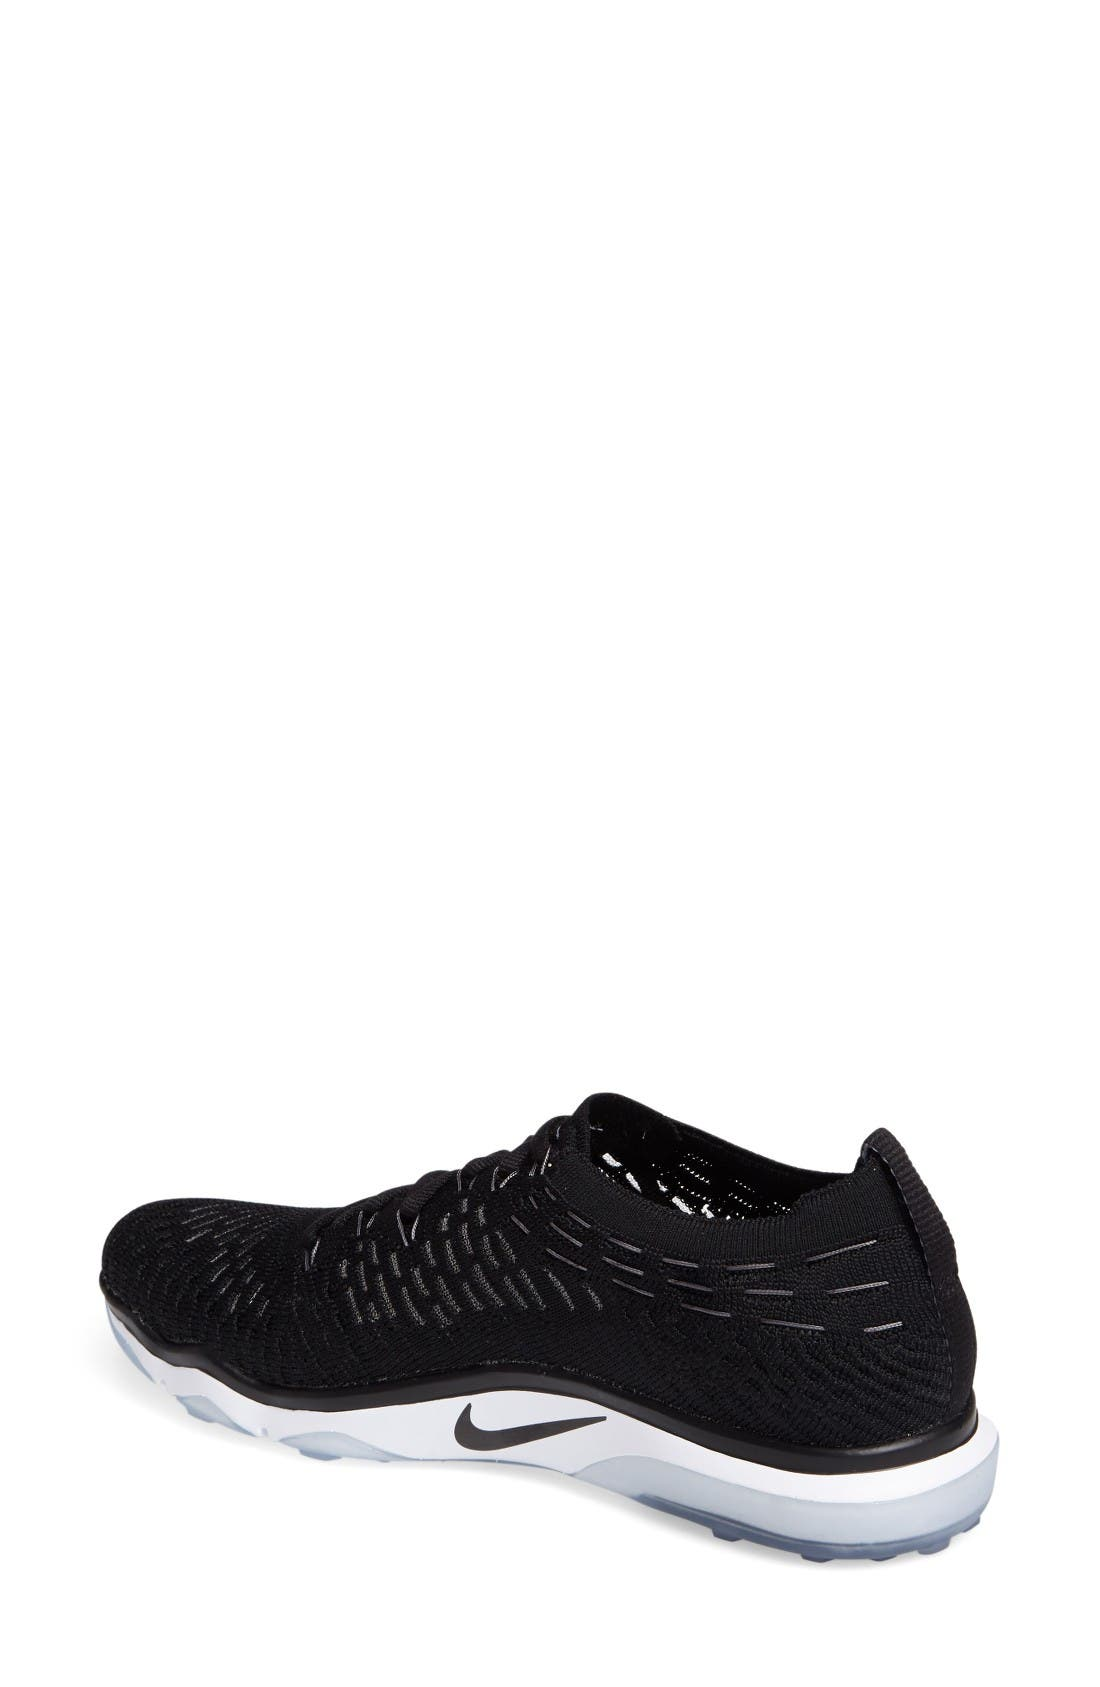 Air Zoom Fearless Flyknit Training Shoe,                             Alternate thumbnail 2, color,                             Black/ White